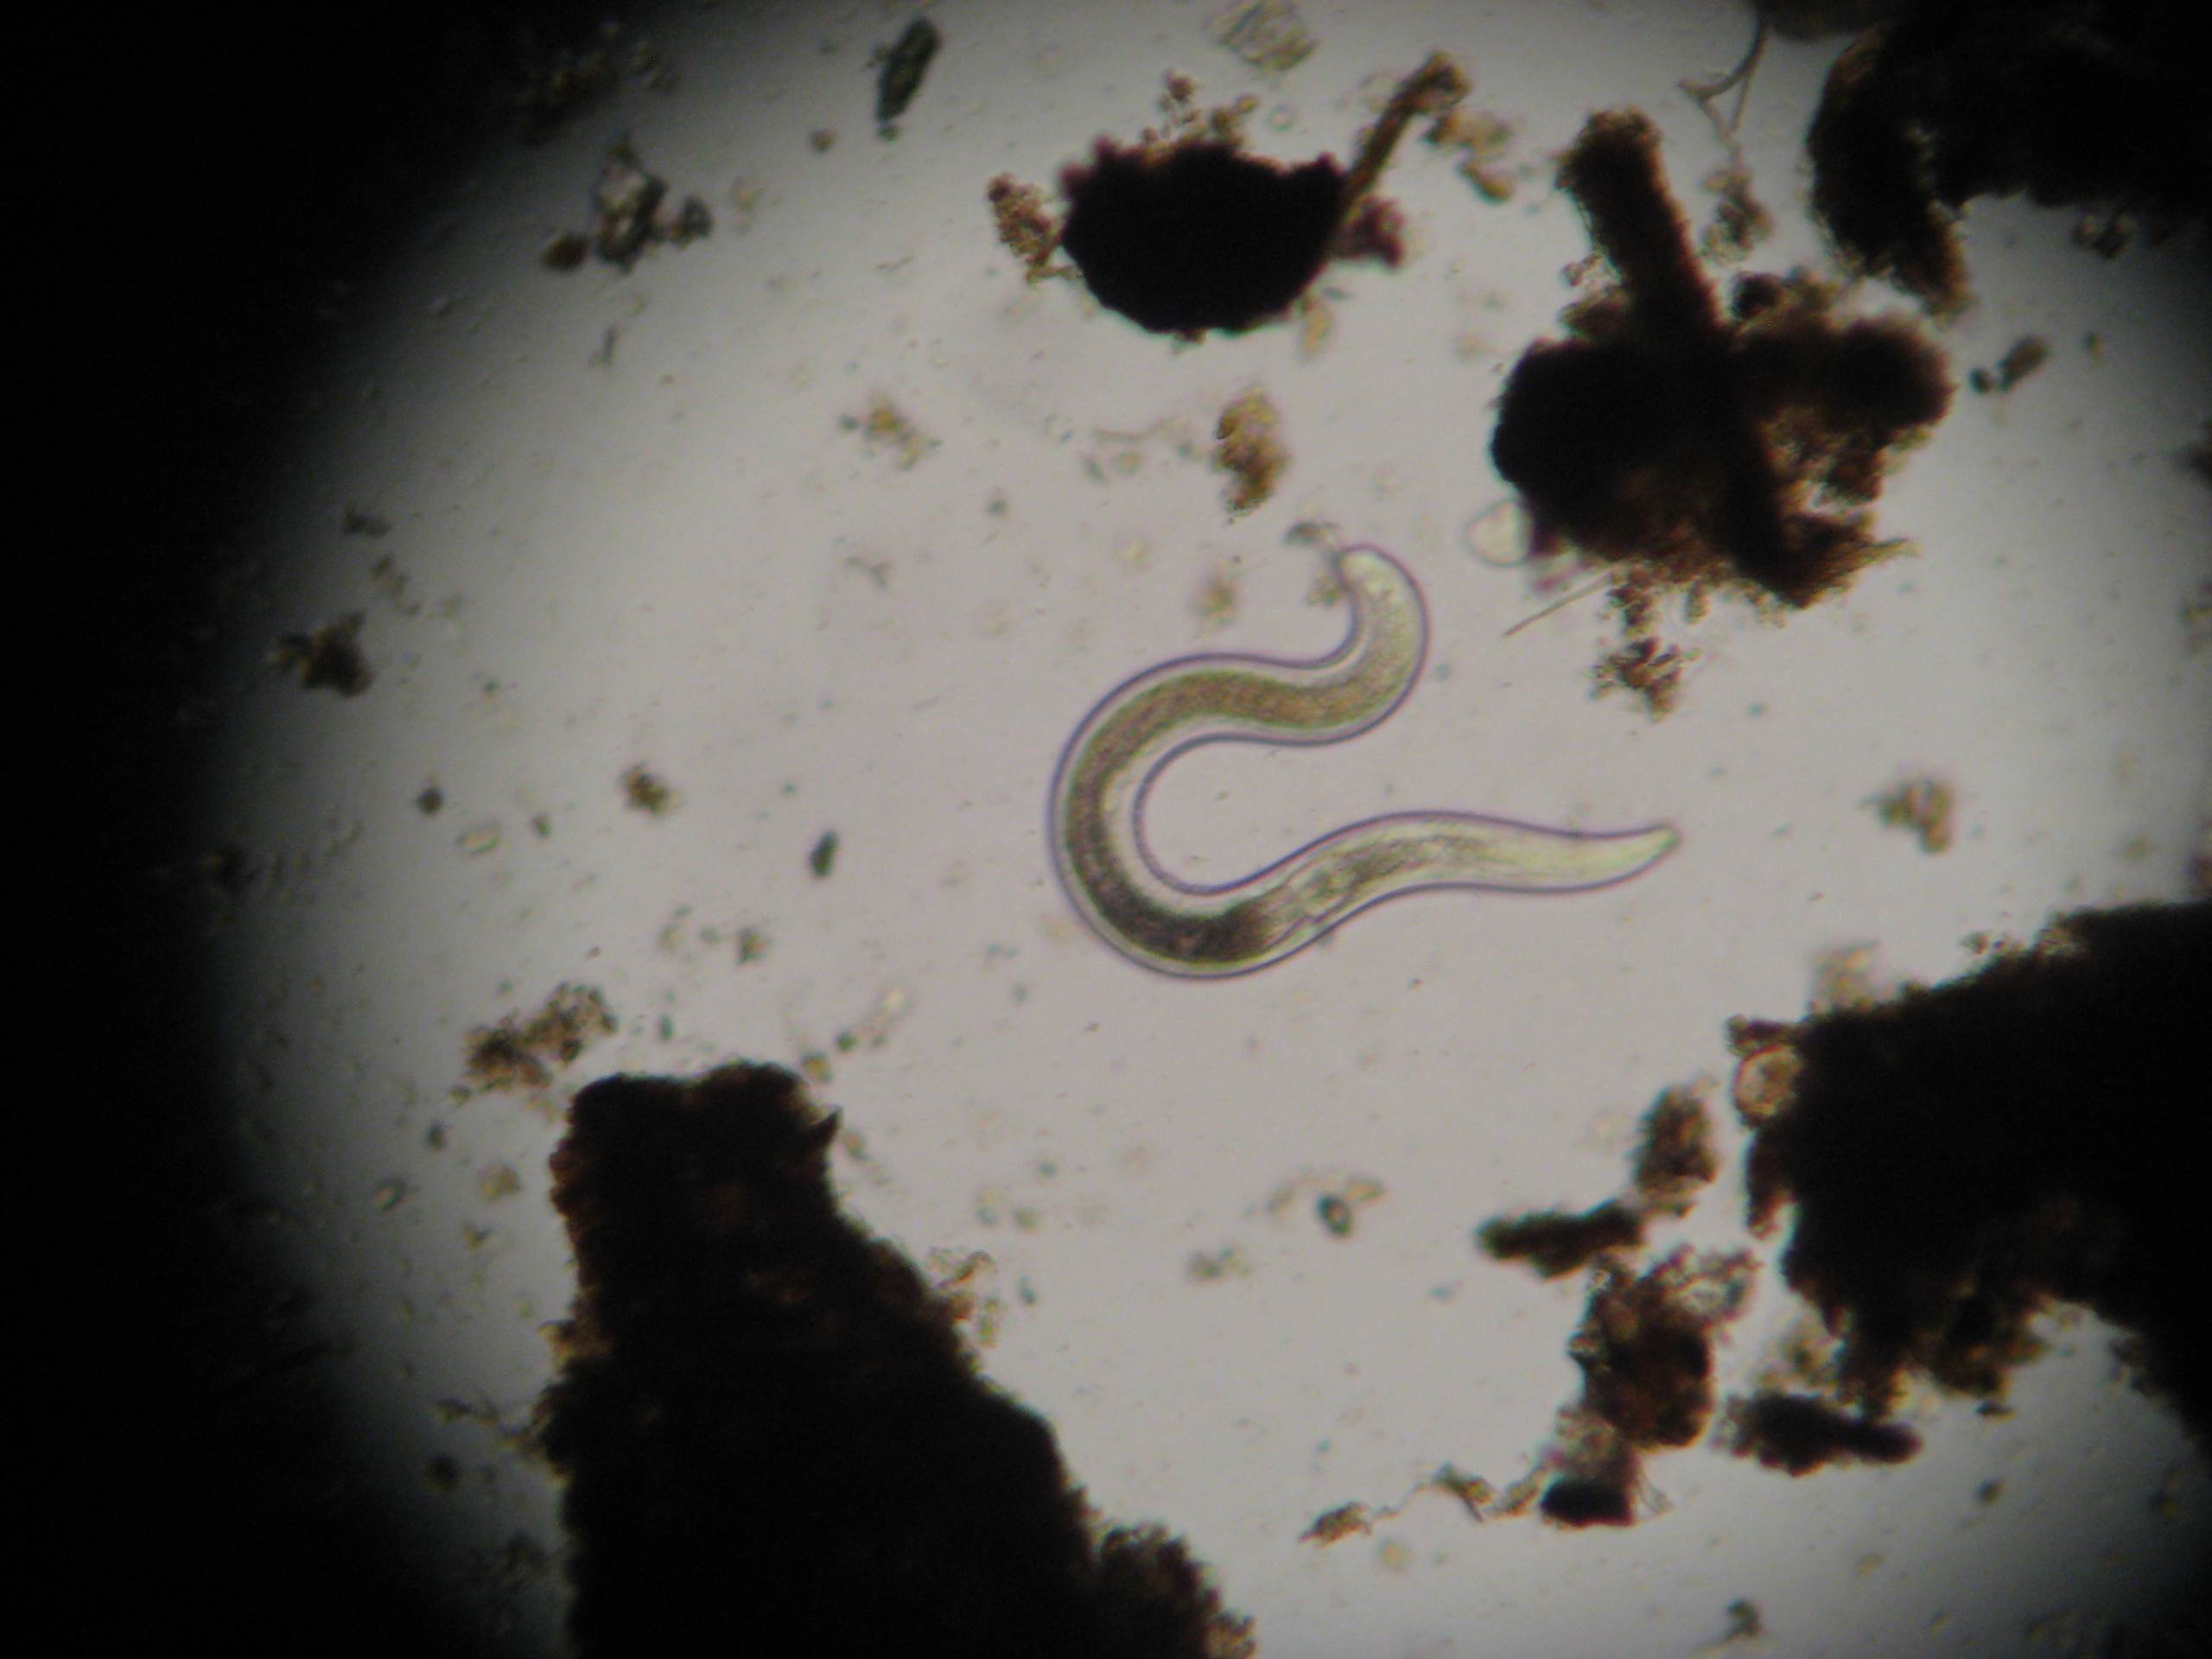 Beneficial Fungal Feeding Nematode Magnified 400X